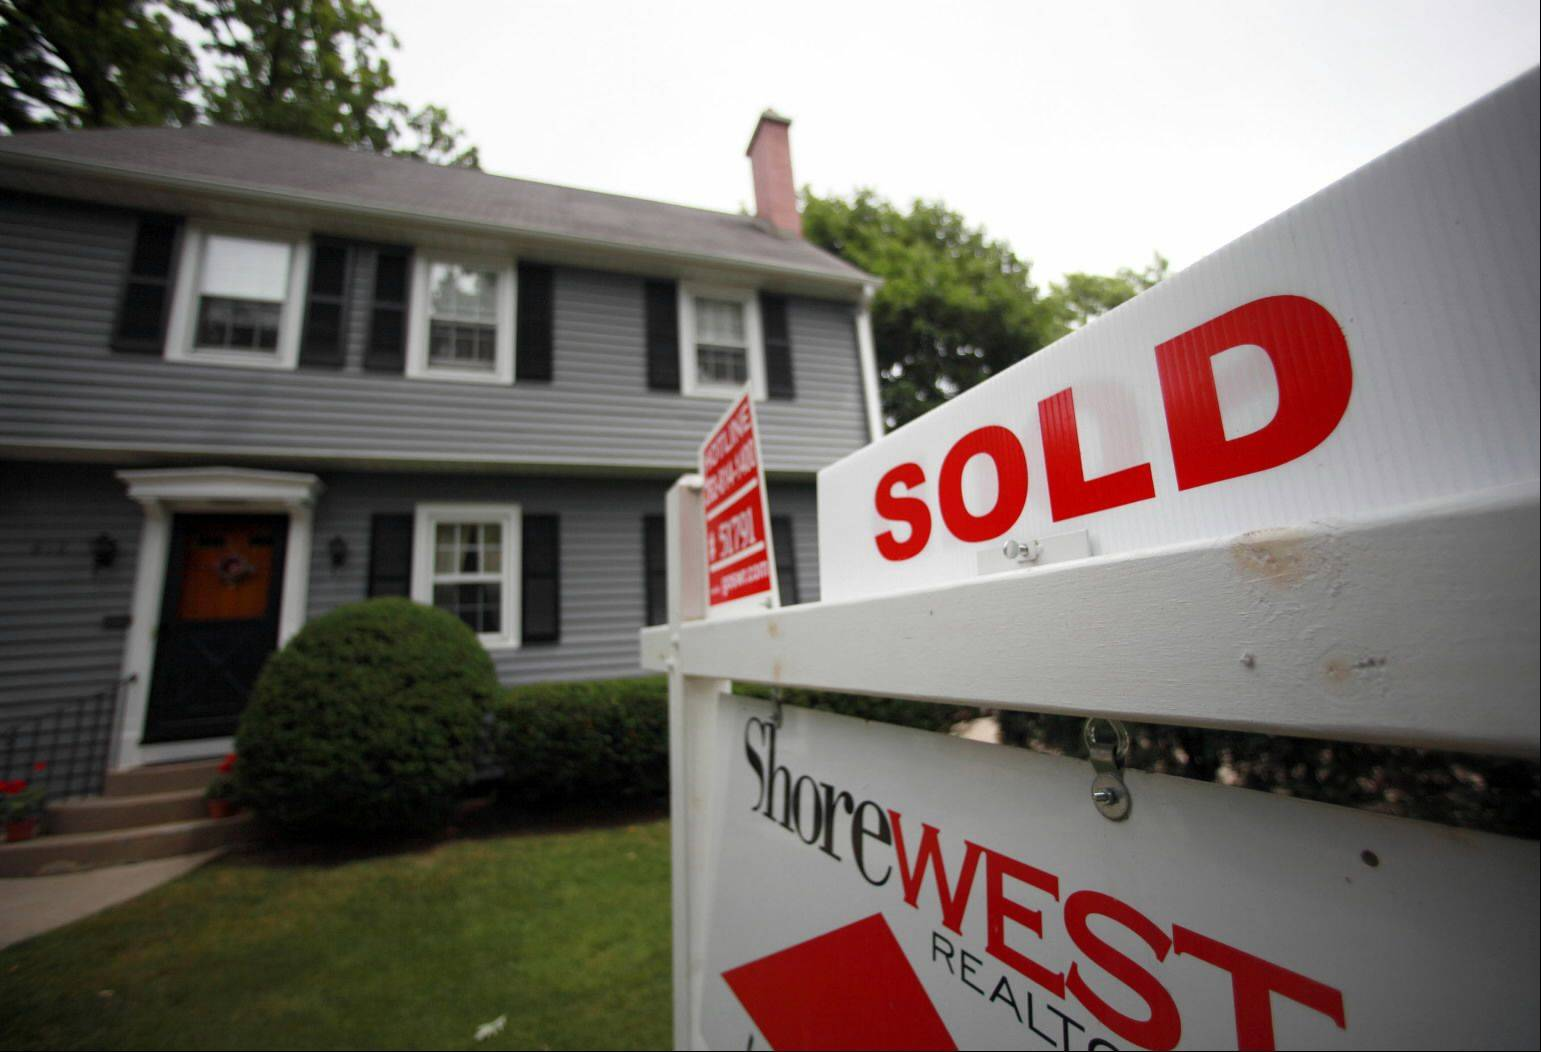 As the U.S. economy shows signs of sputtering, instability on Wall Street is sapping the confidence of would-be property buyers, said Karl Case, co-founder of the S&P/Case-Shiller home- price index. That means housing, which helped every recovery except one before the most recent recession, may deepen its five-year drag on growth.